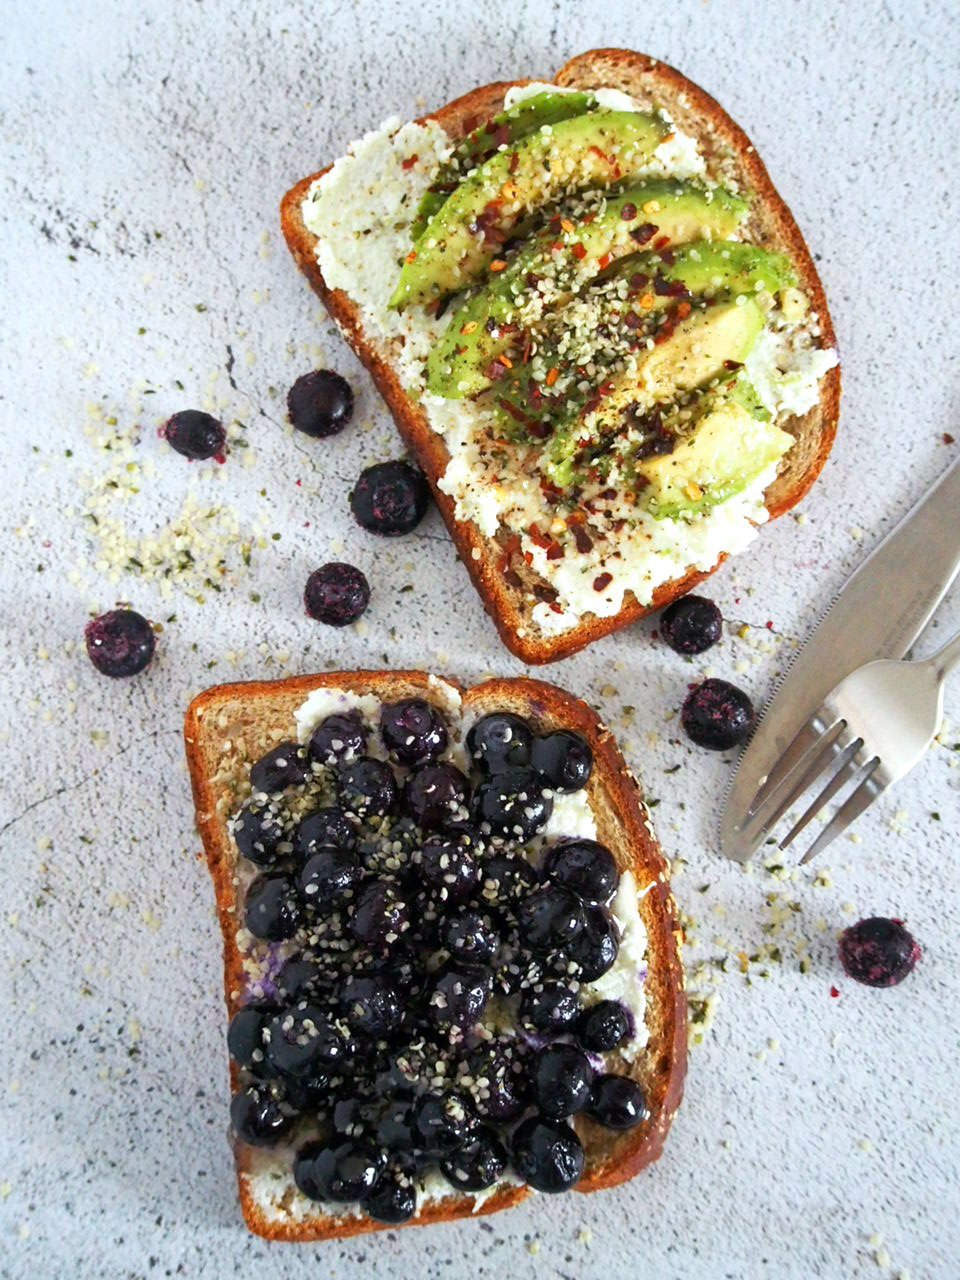 Top view of the avocado and blueberry toasts.